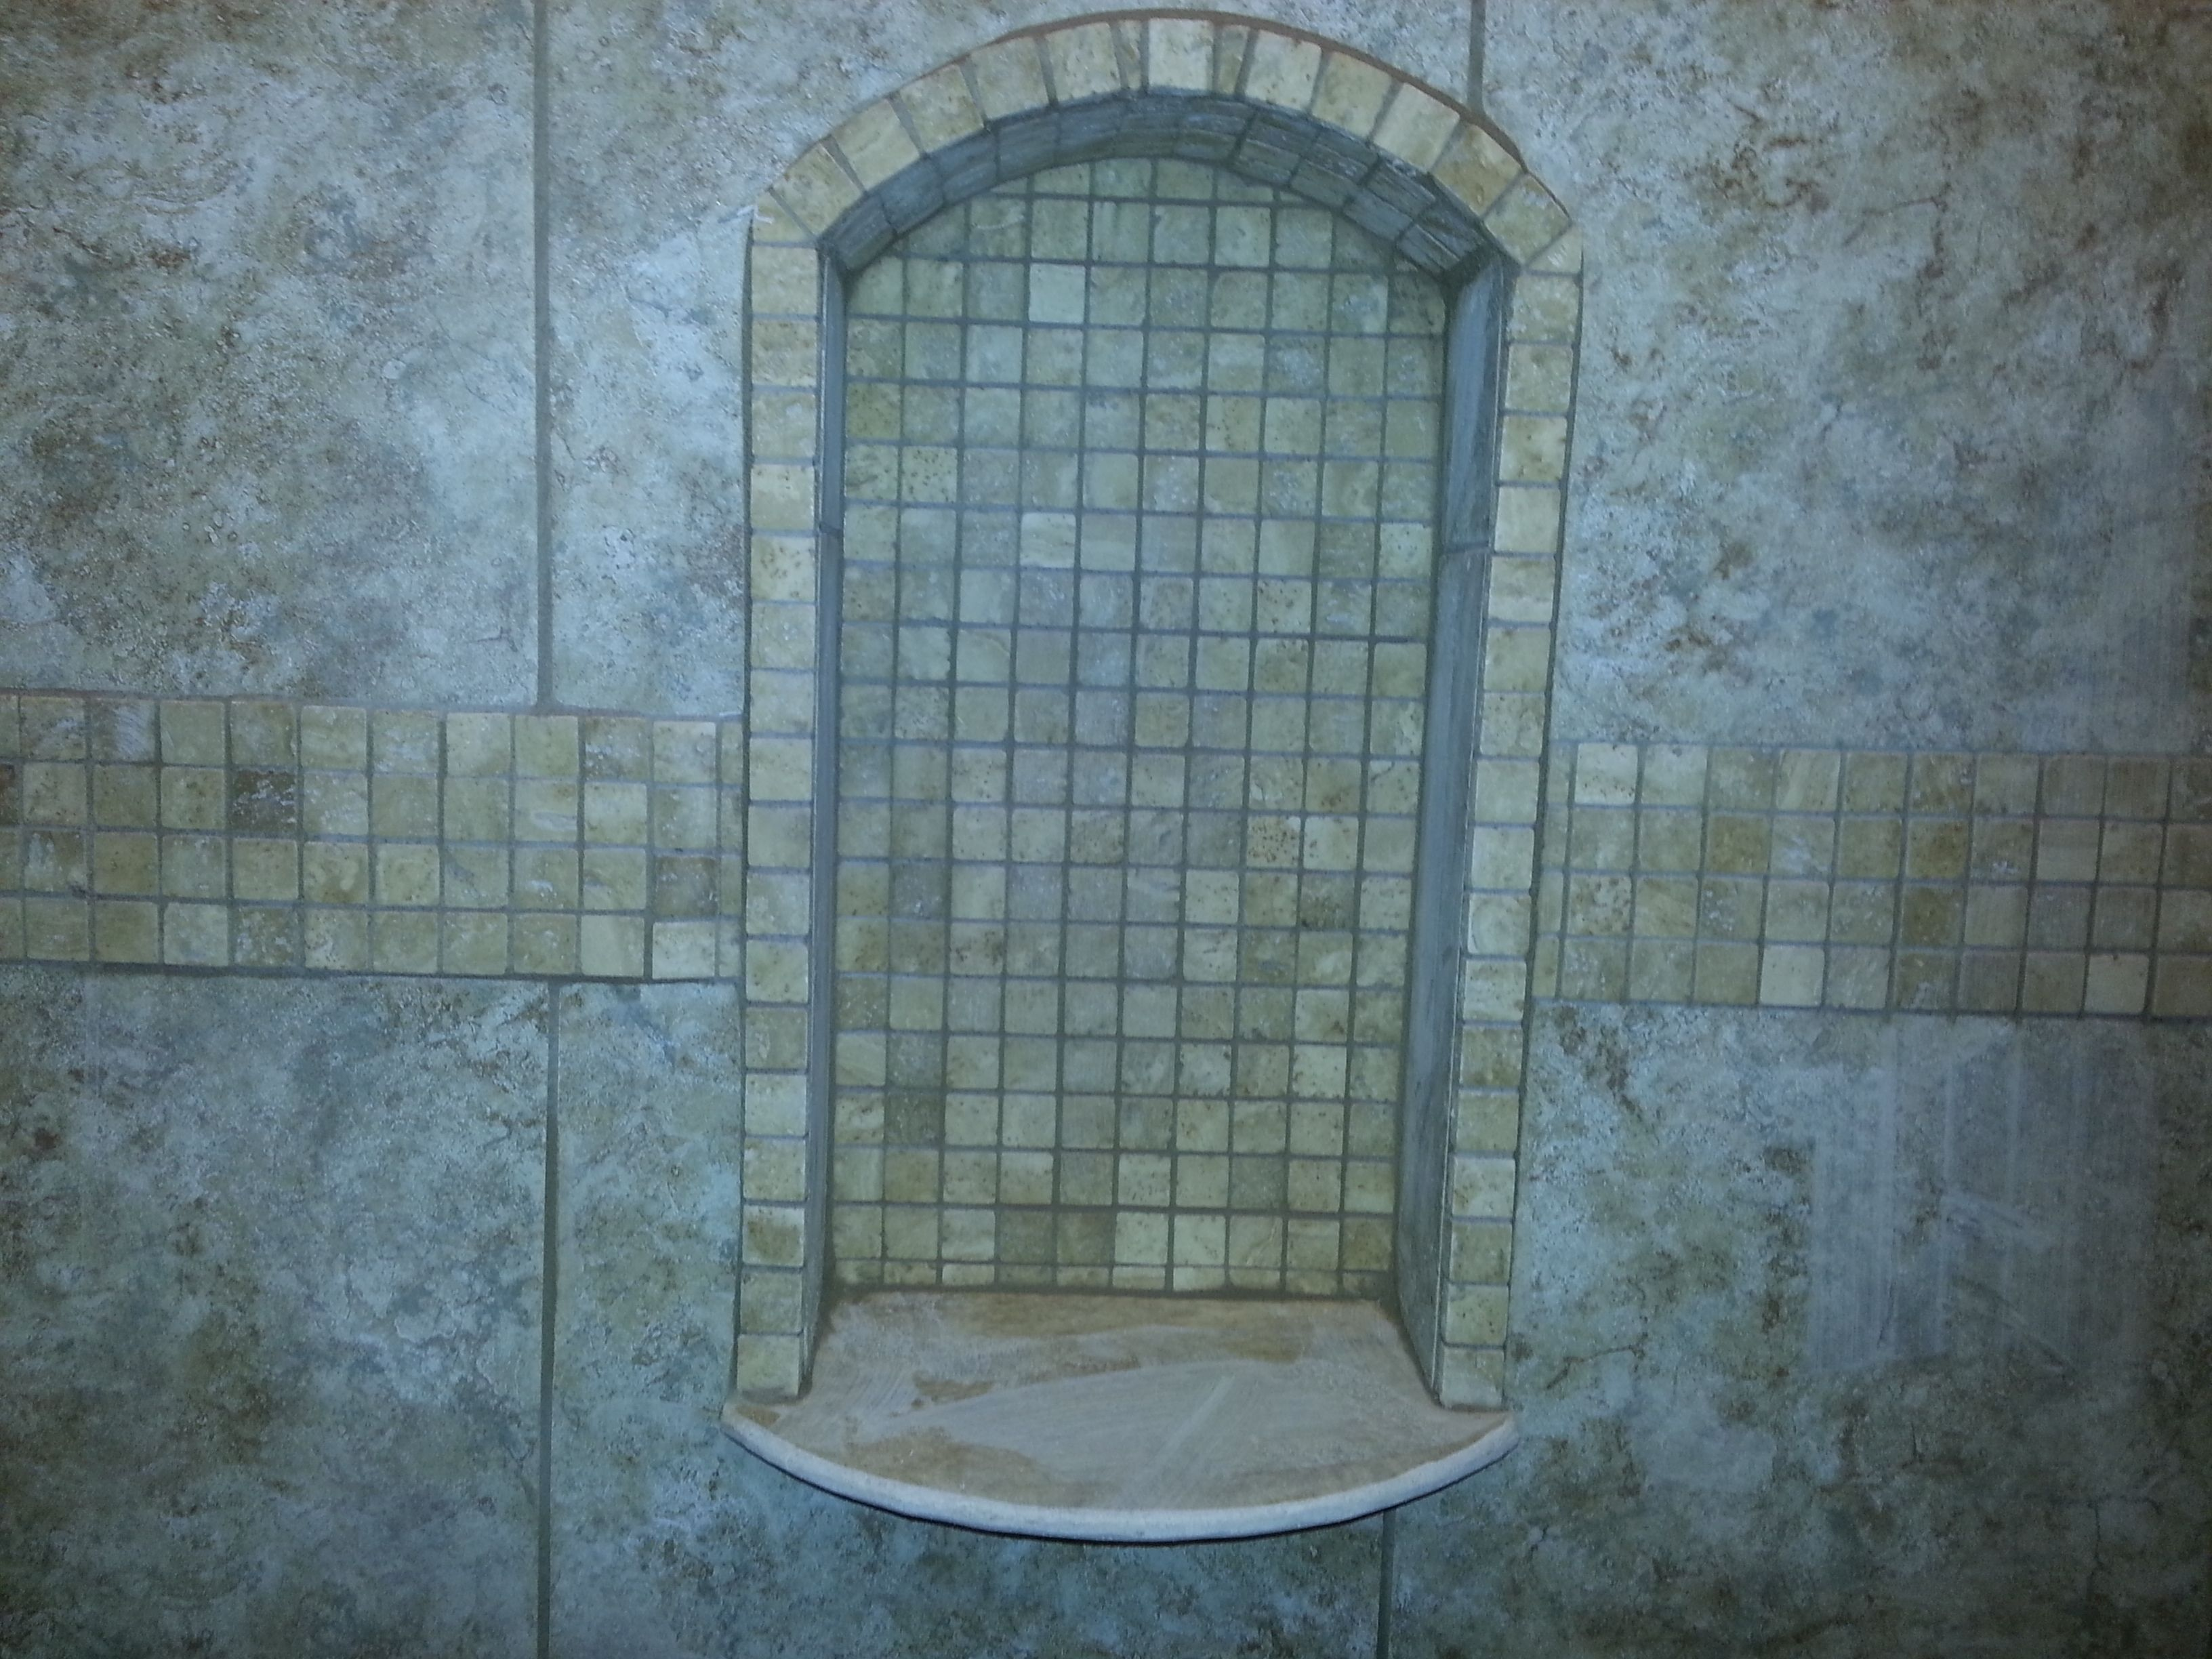 Arch shower niches pictures | Ceramic niche with arched top and ...